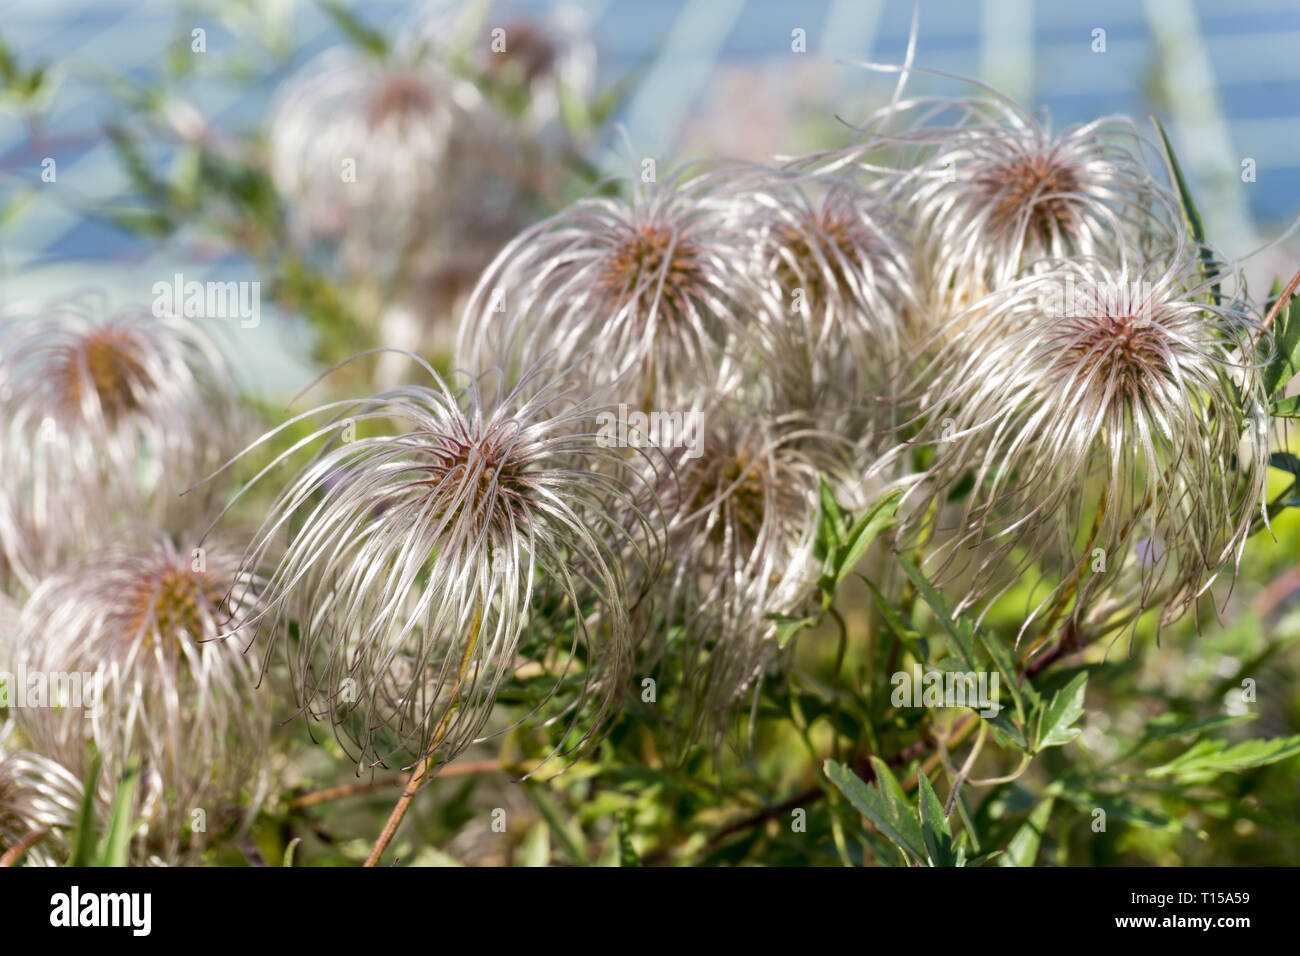 Clematis vitalba (Old man's beard, Traveller's Joy). Shrub of the Ranunculaceae family. Selective focus. Horizontal image - Stock Image